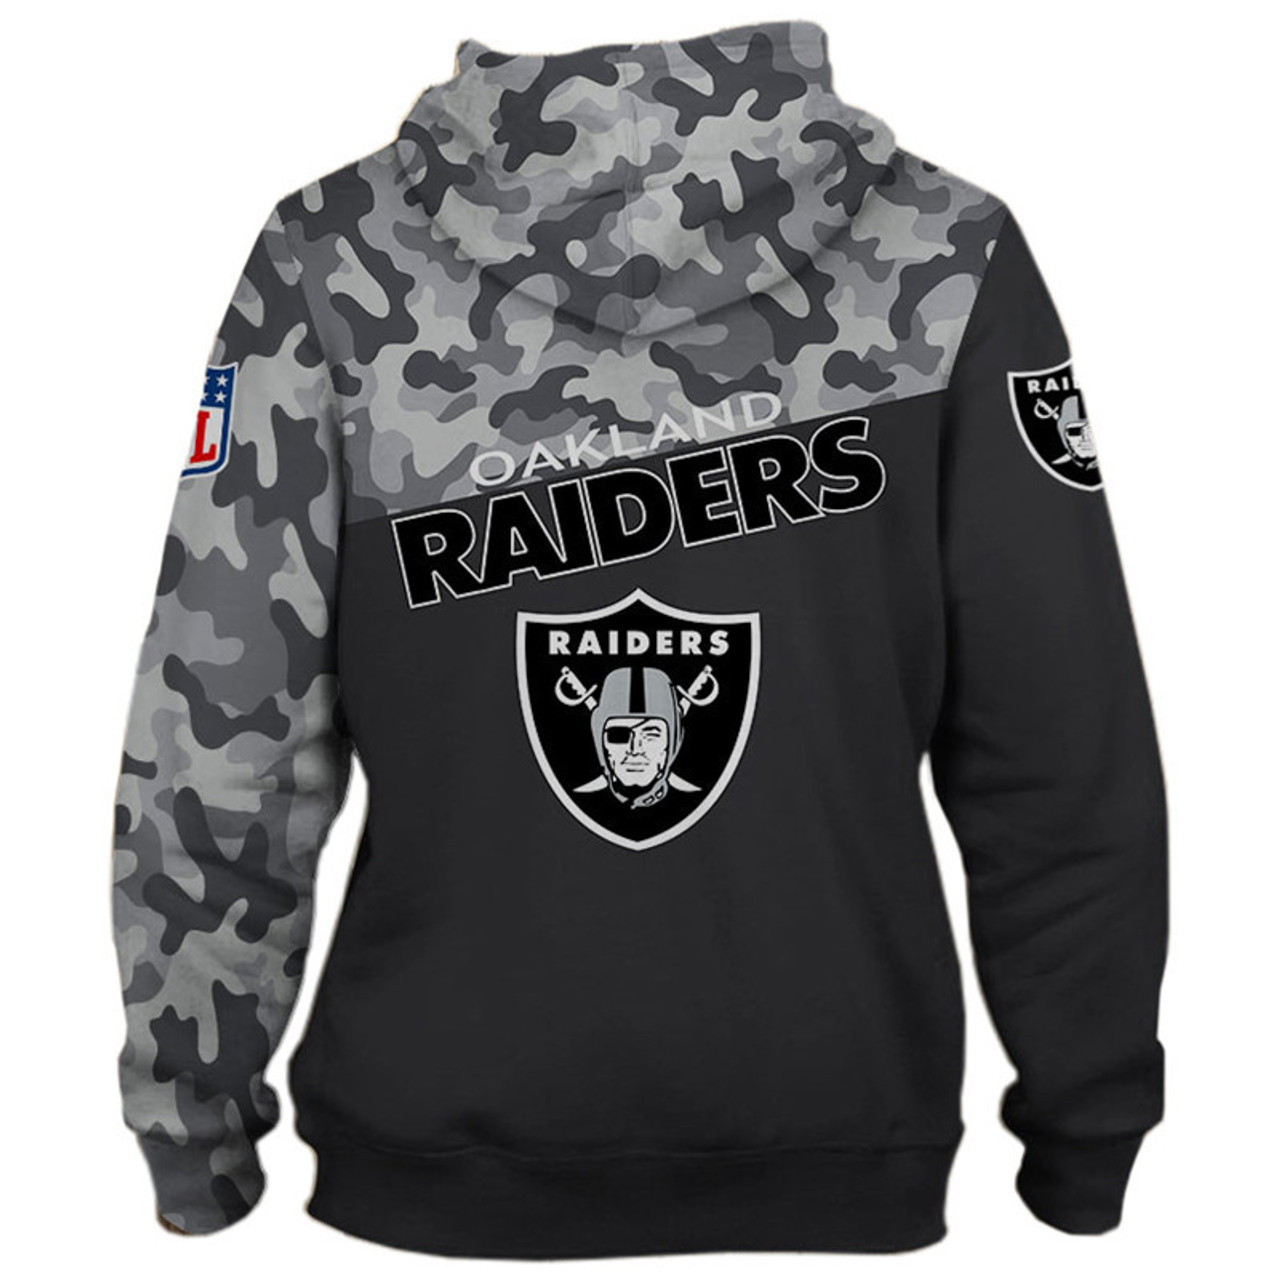 **(OFFICIAL-N.F.L.OAKLAND-RAIDERS-CAMO.DESIGN-ZIPPERED-HOODIES/3D-CUSTOM-RAIDERS-LOGOS & OFFICIAL-RAIDERS-TEAM-COLORS/NICE-3D-DETAILED-GRAPHIC-PRINTED-DOUBLE-SIDED/ALL-OVER-HOODIE-PRINTED-DESIGN/WARM-PREMIUM-N.F.L.RAIDERS-ZIPPERED-CAMO.HOODIES)**